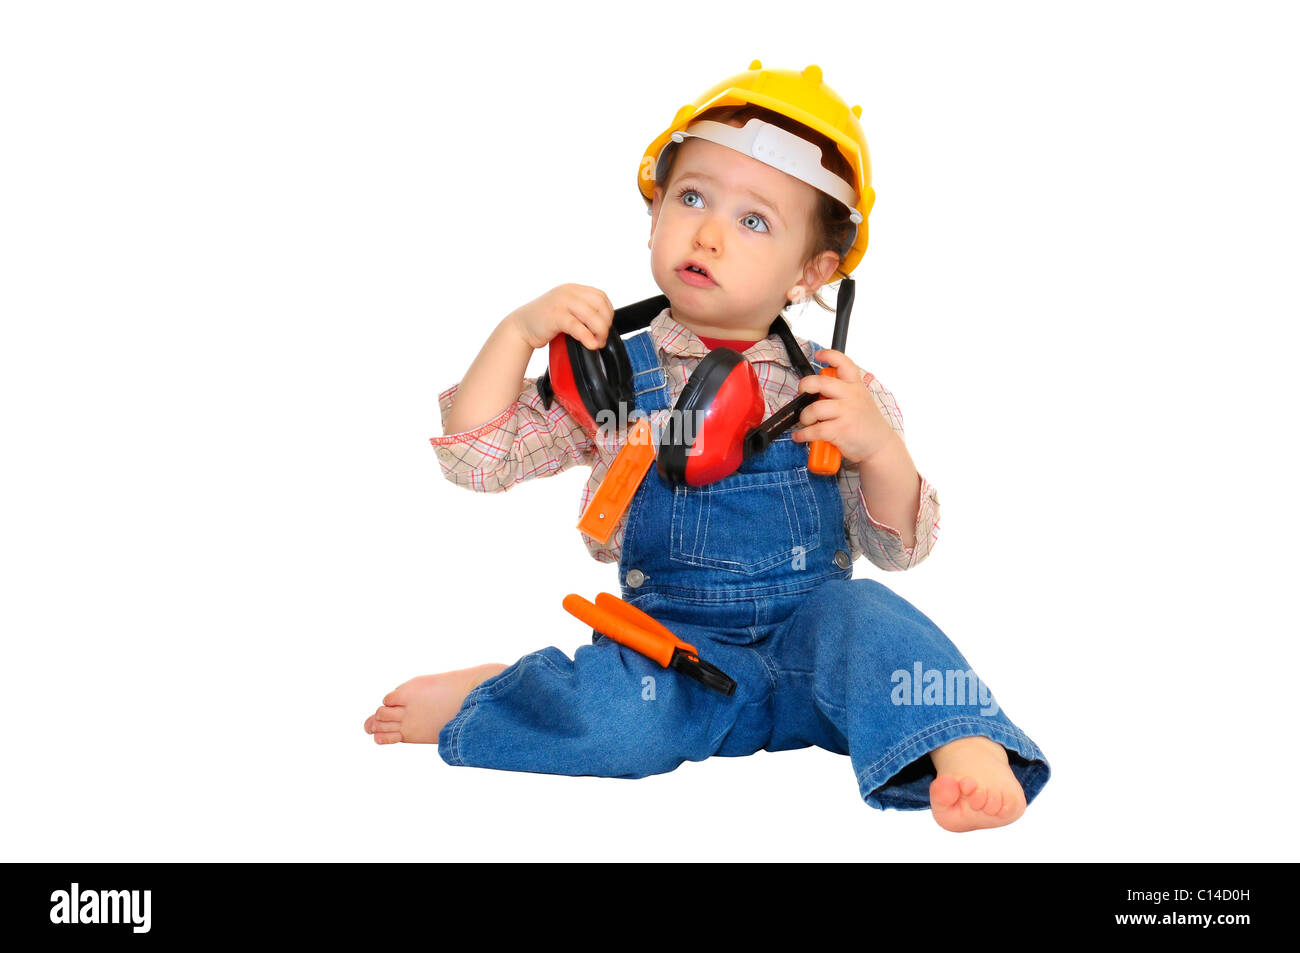 03314e814d5 Baby worker with hat and tools isolated in white Stock Photo ...